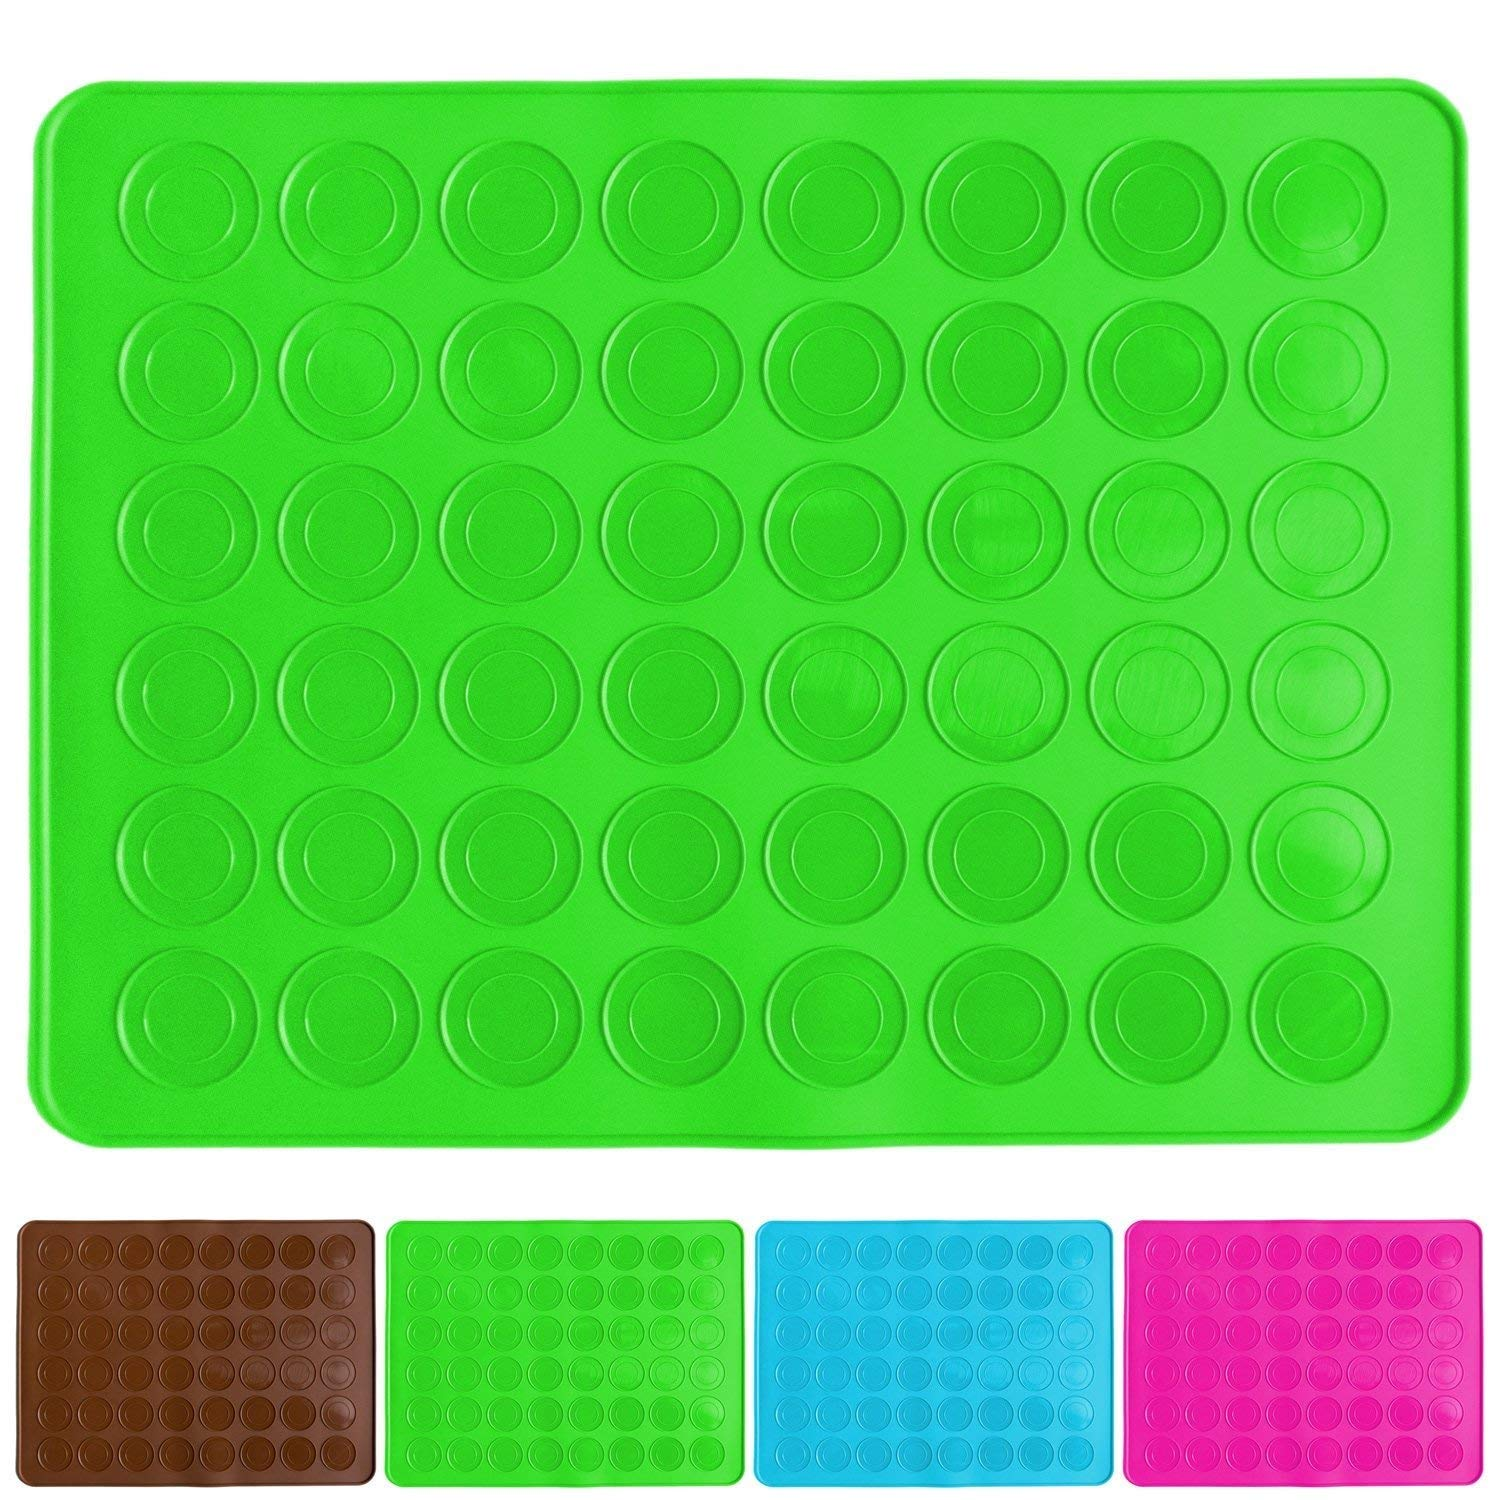 Belmalia macaron silicone baking mat for 24 perfect macarons, 48 moulds, non-stick coated, 38x28cm